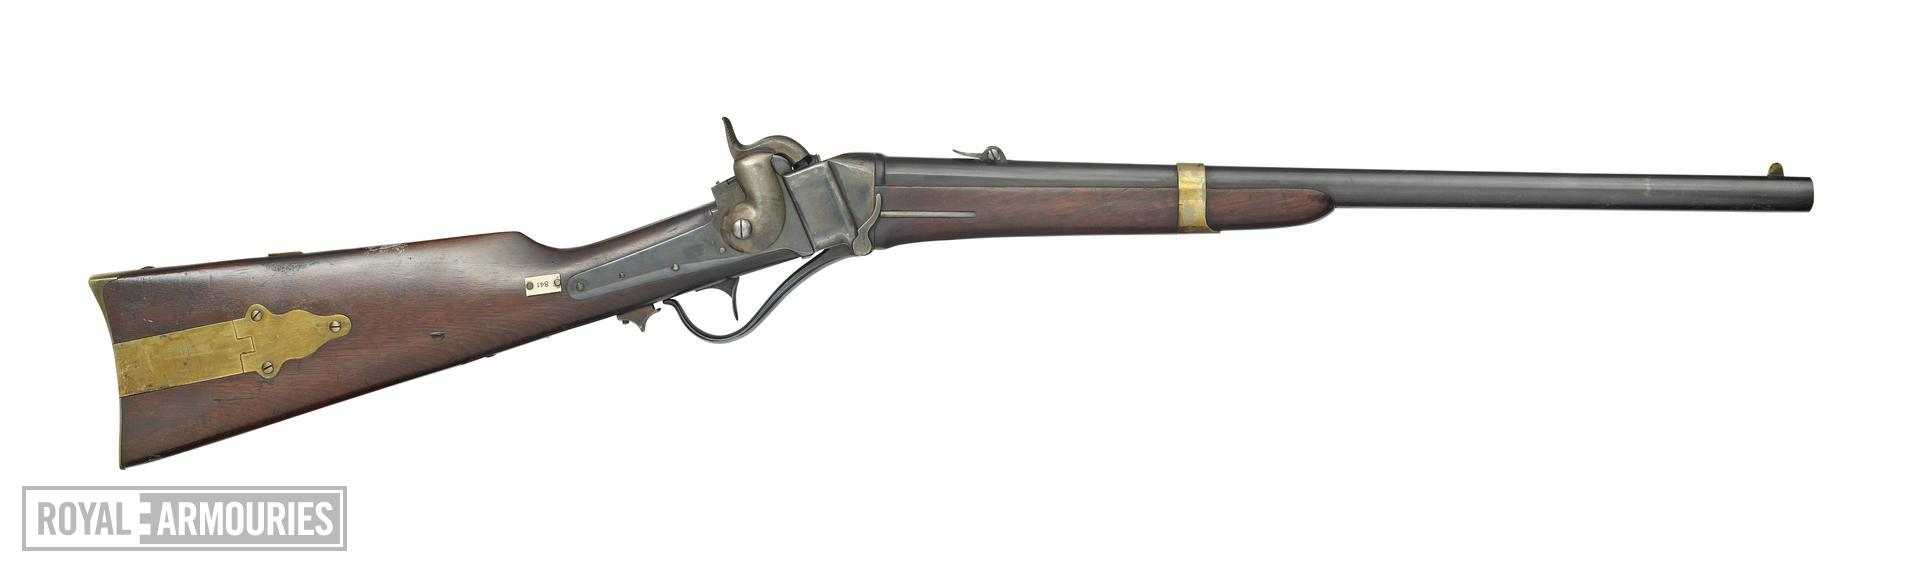 Percussion breech-loading military carbine - Sharps Model 1852 (John Brown)